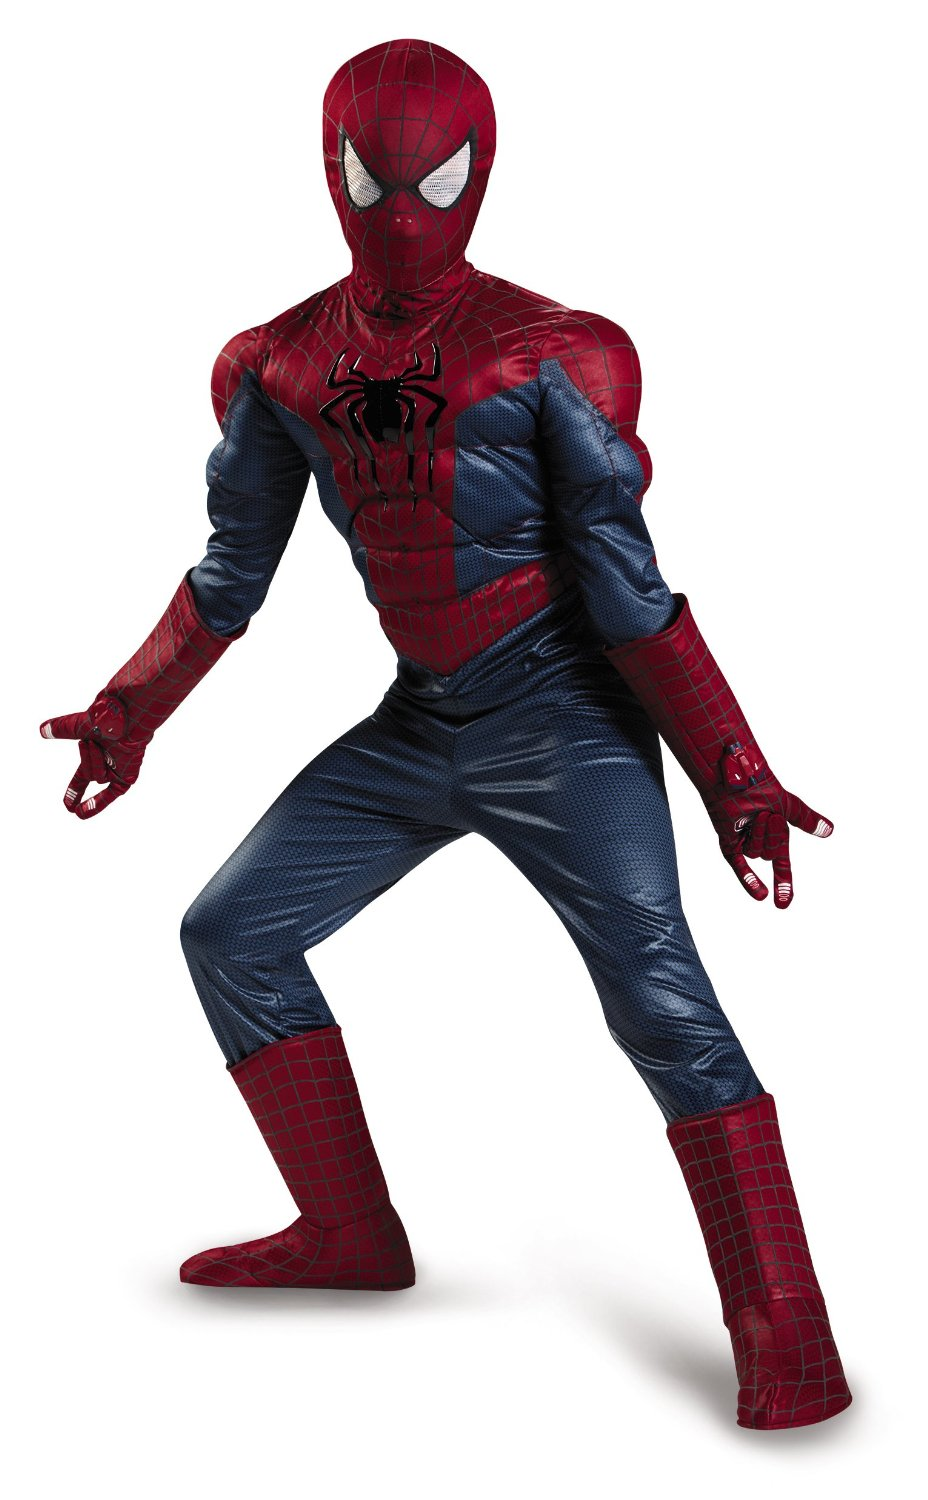 The Coolest Spiderman Toys You Can Get for Your Children 5BRTqT4T